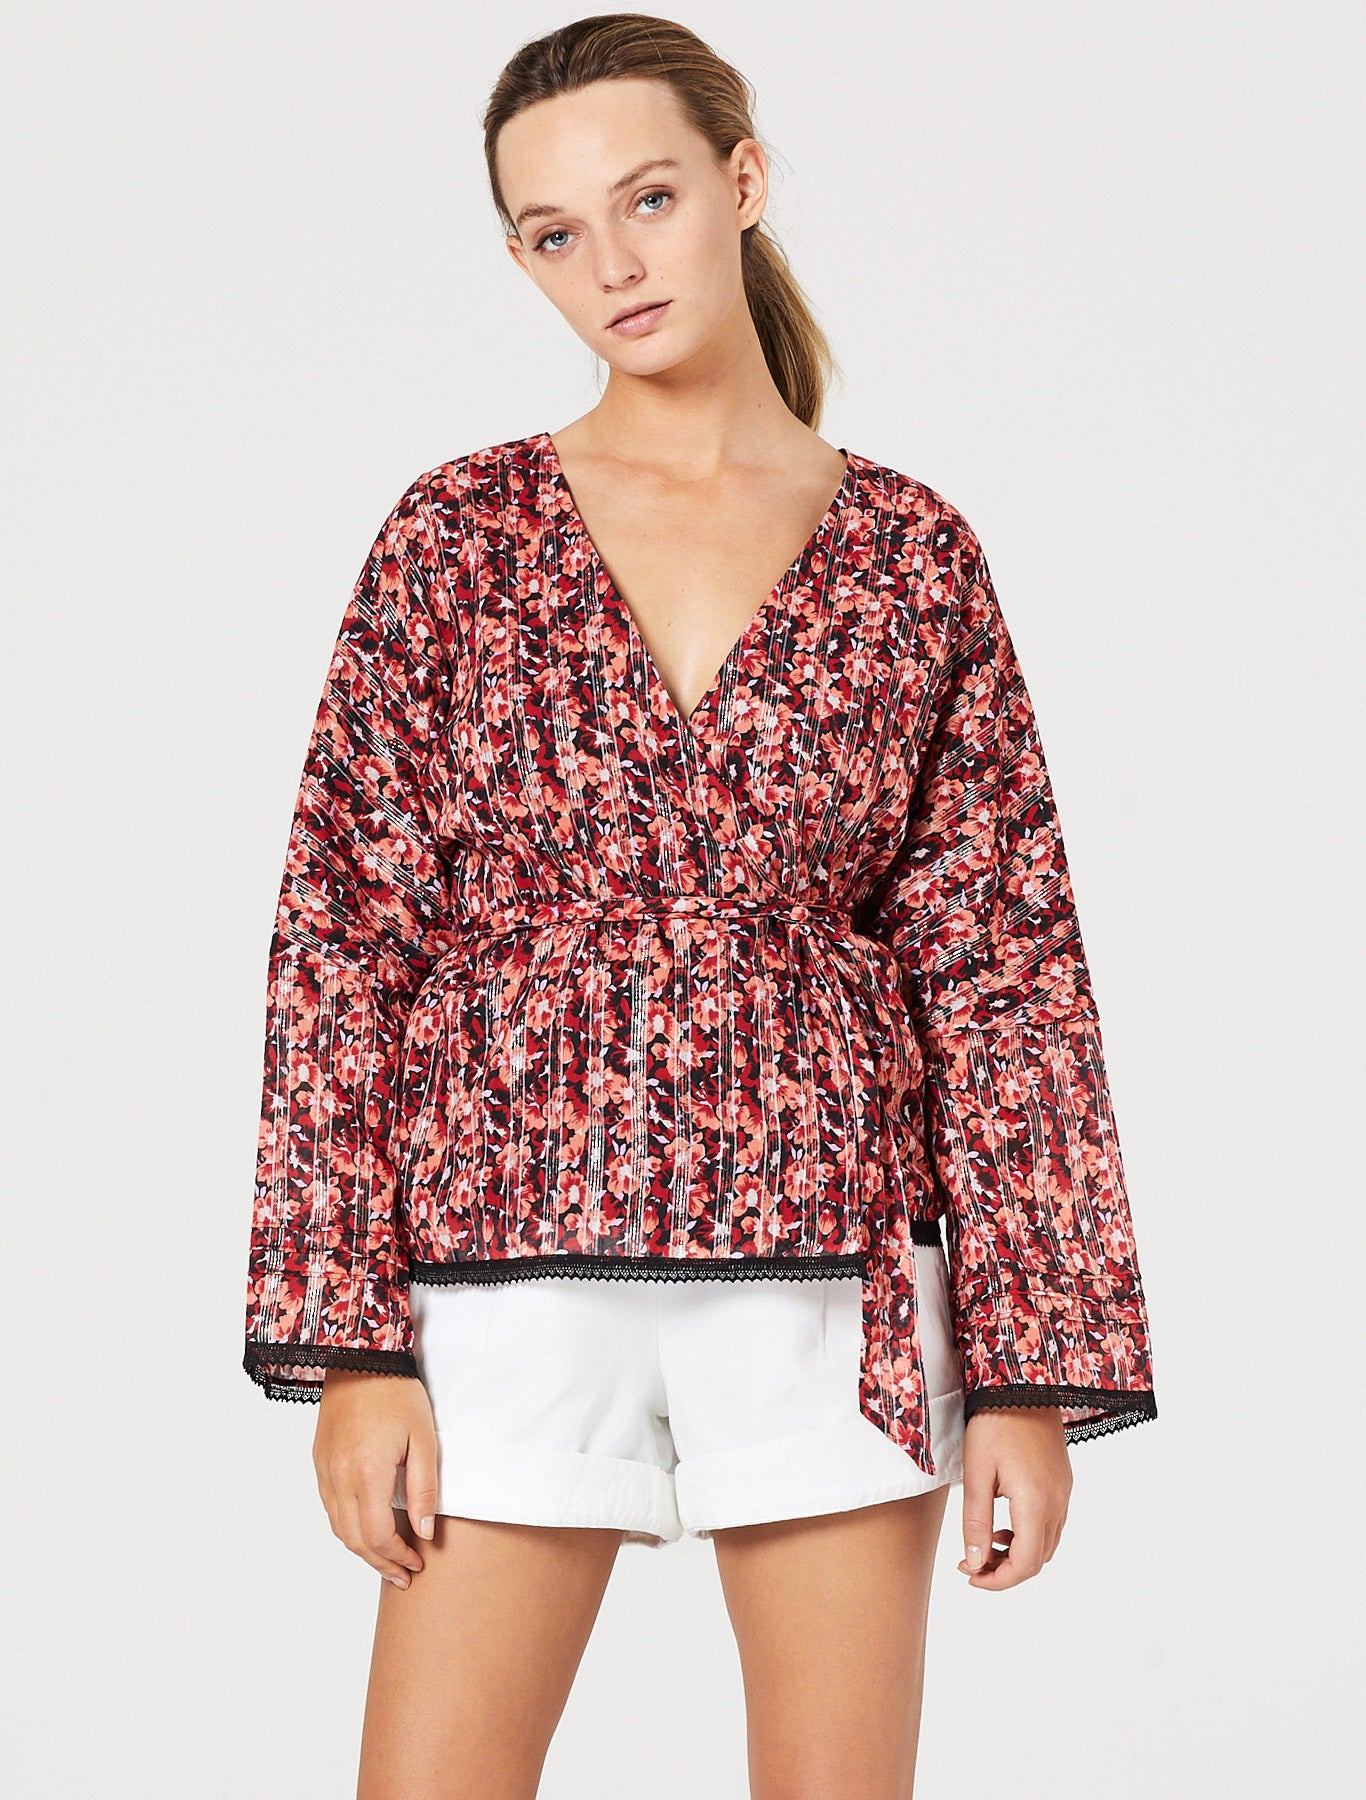 WITHOUT A BLUSH L/S TOP